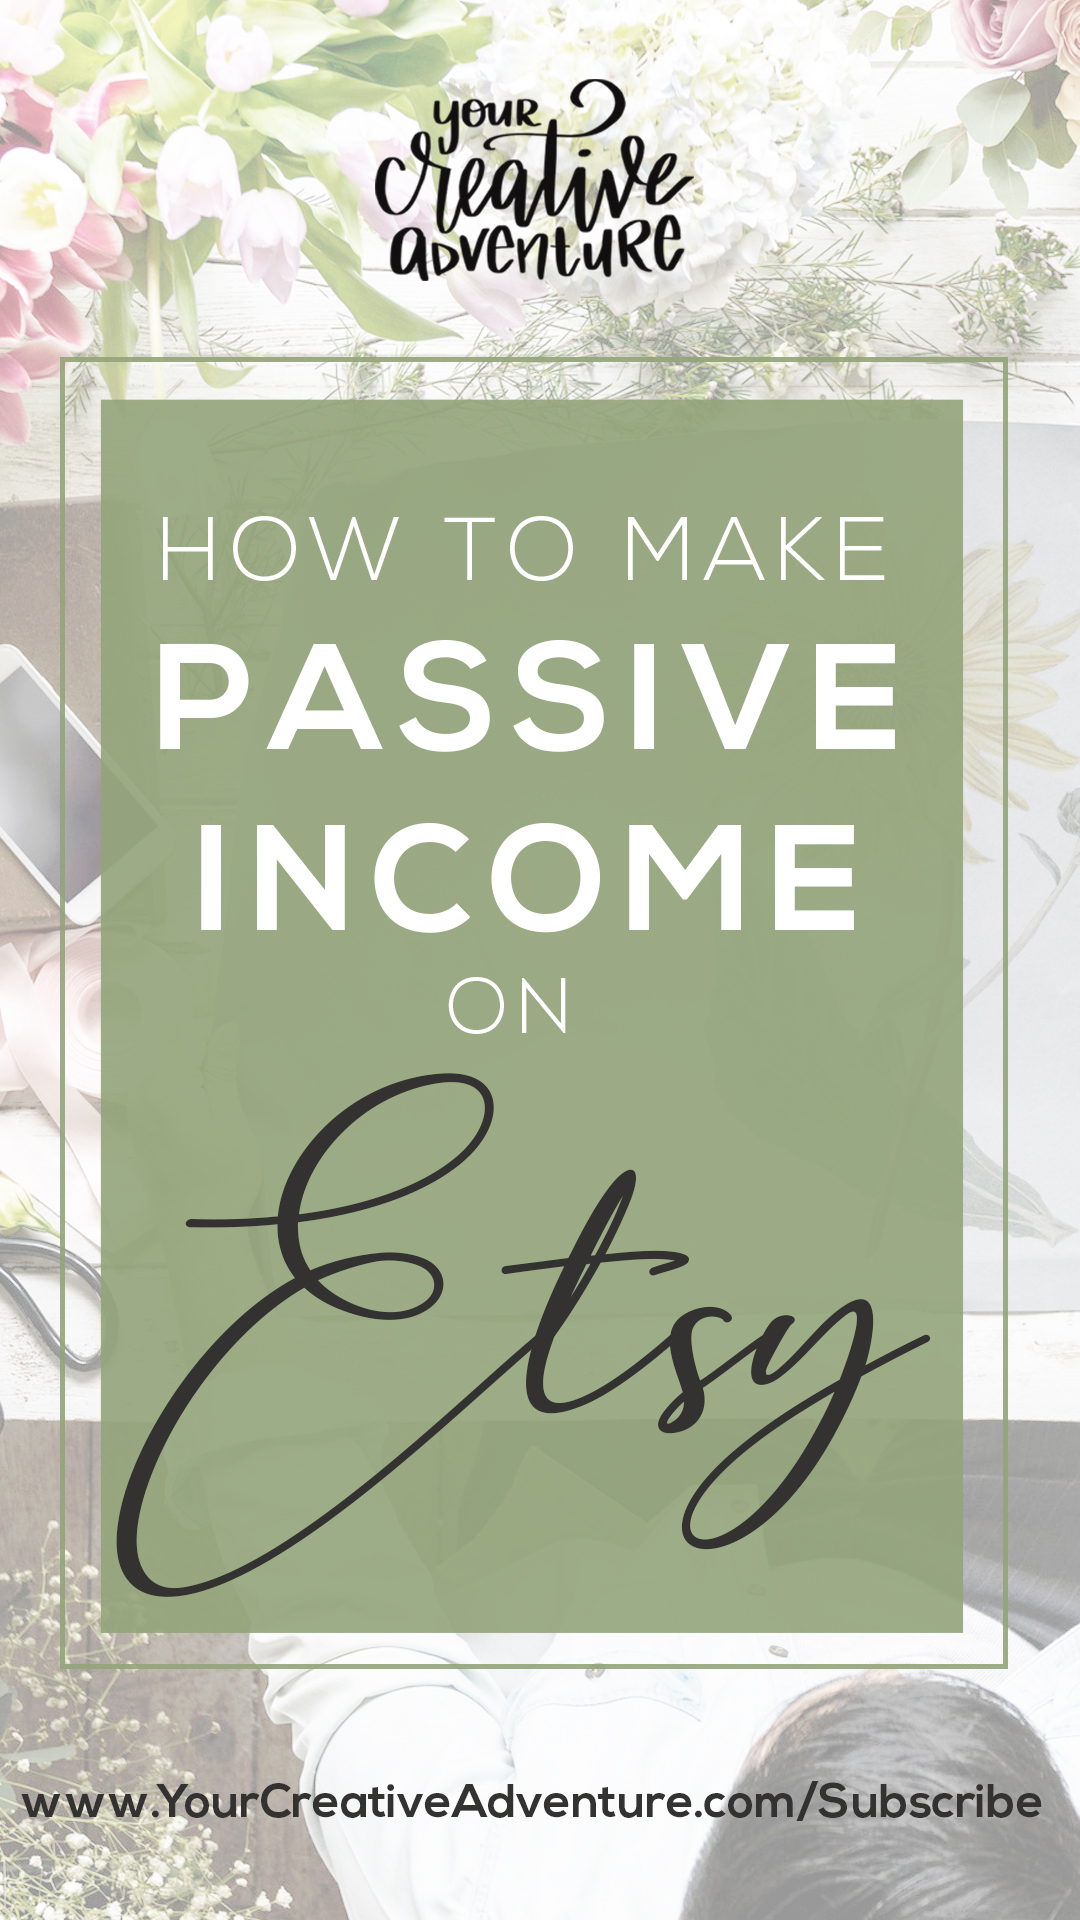 It is a dream for us creatives to find a way to earn passive income for artists. Then, we can enjoy doing what we love and earning an income from our art. In this post, I share with you how to earn an Etsy passive income without the need to spend a lot of effort all the time. It's like an artist's dream come true!